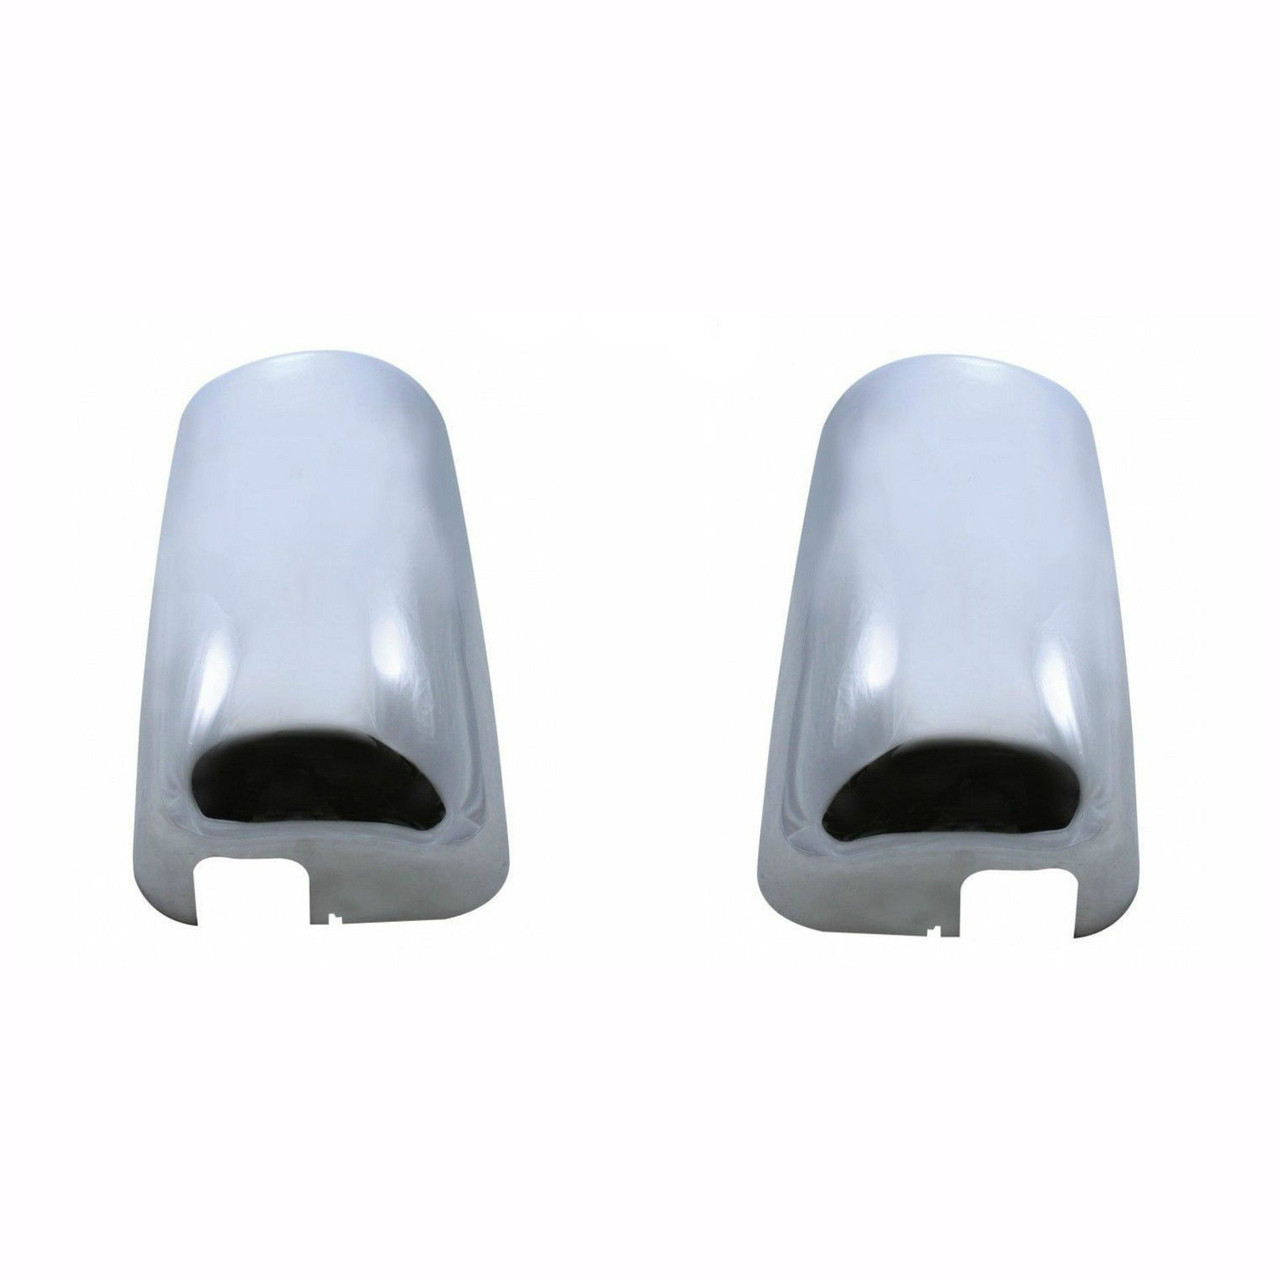 Peterbilt 387 Mirror Cover Set